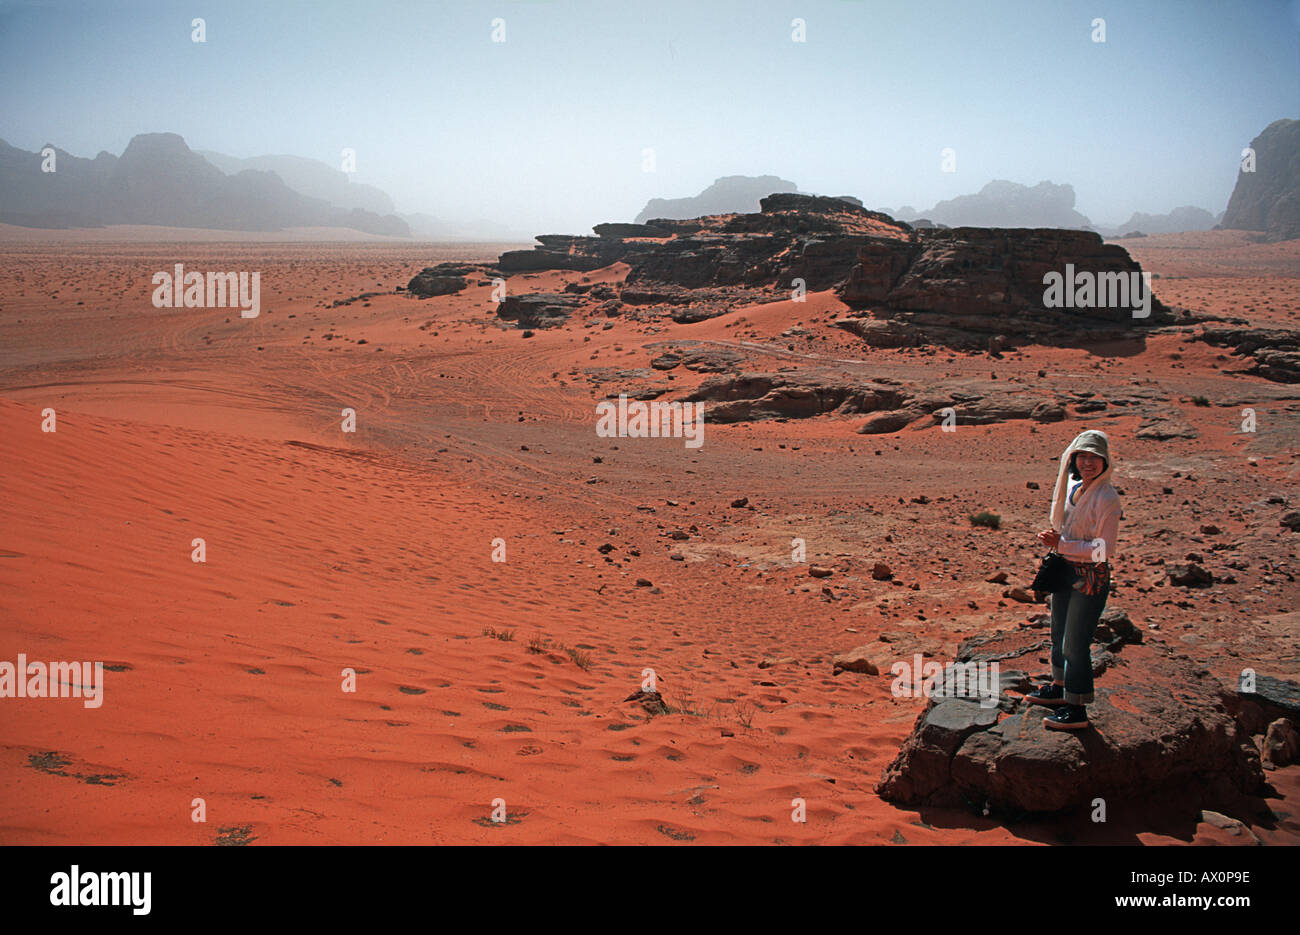 Red sand floor of the desert with rocky outcrops called Jebels in the distance Wadi Rum Jordan - Stock Image